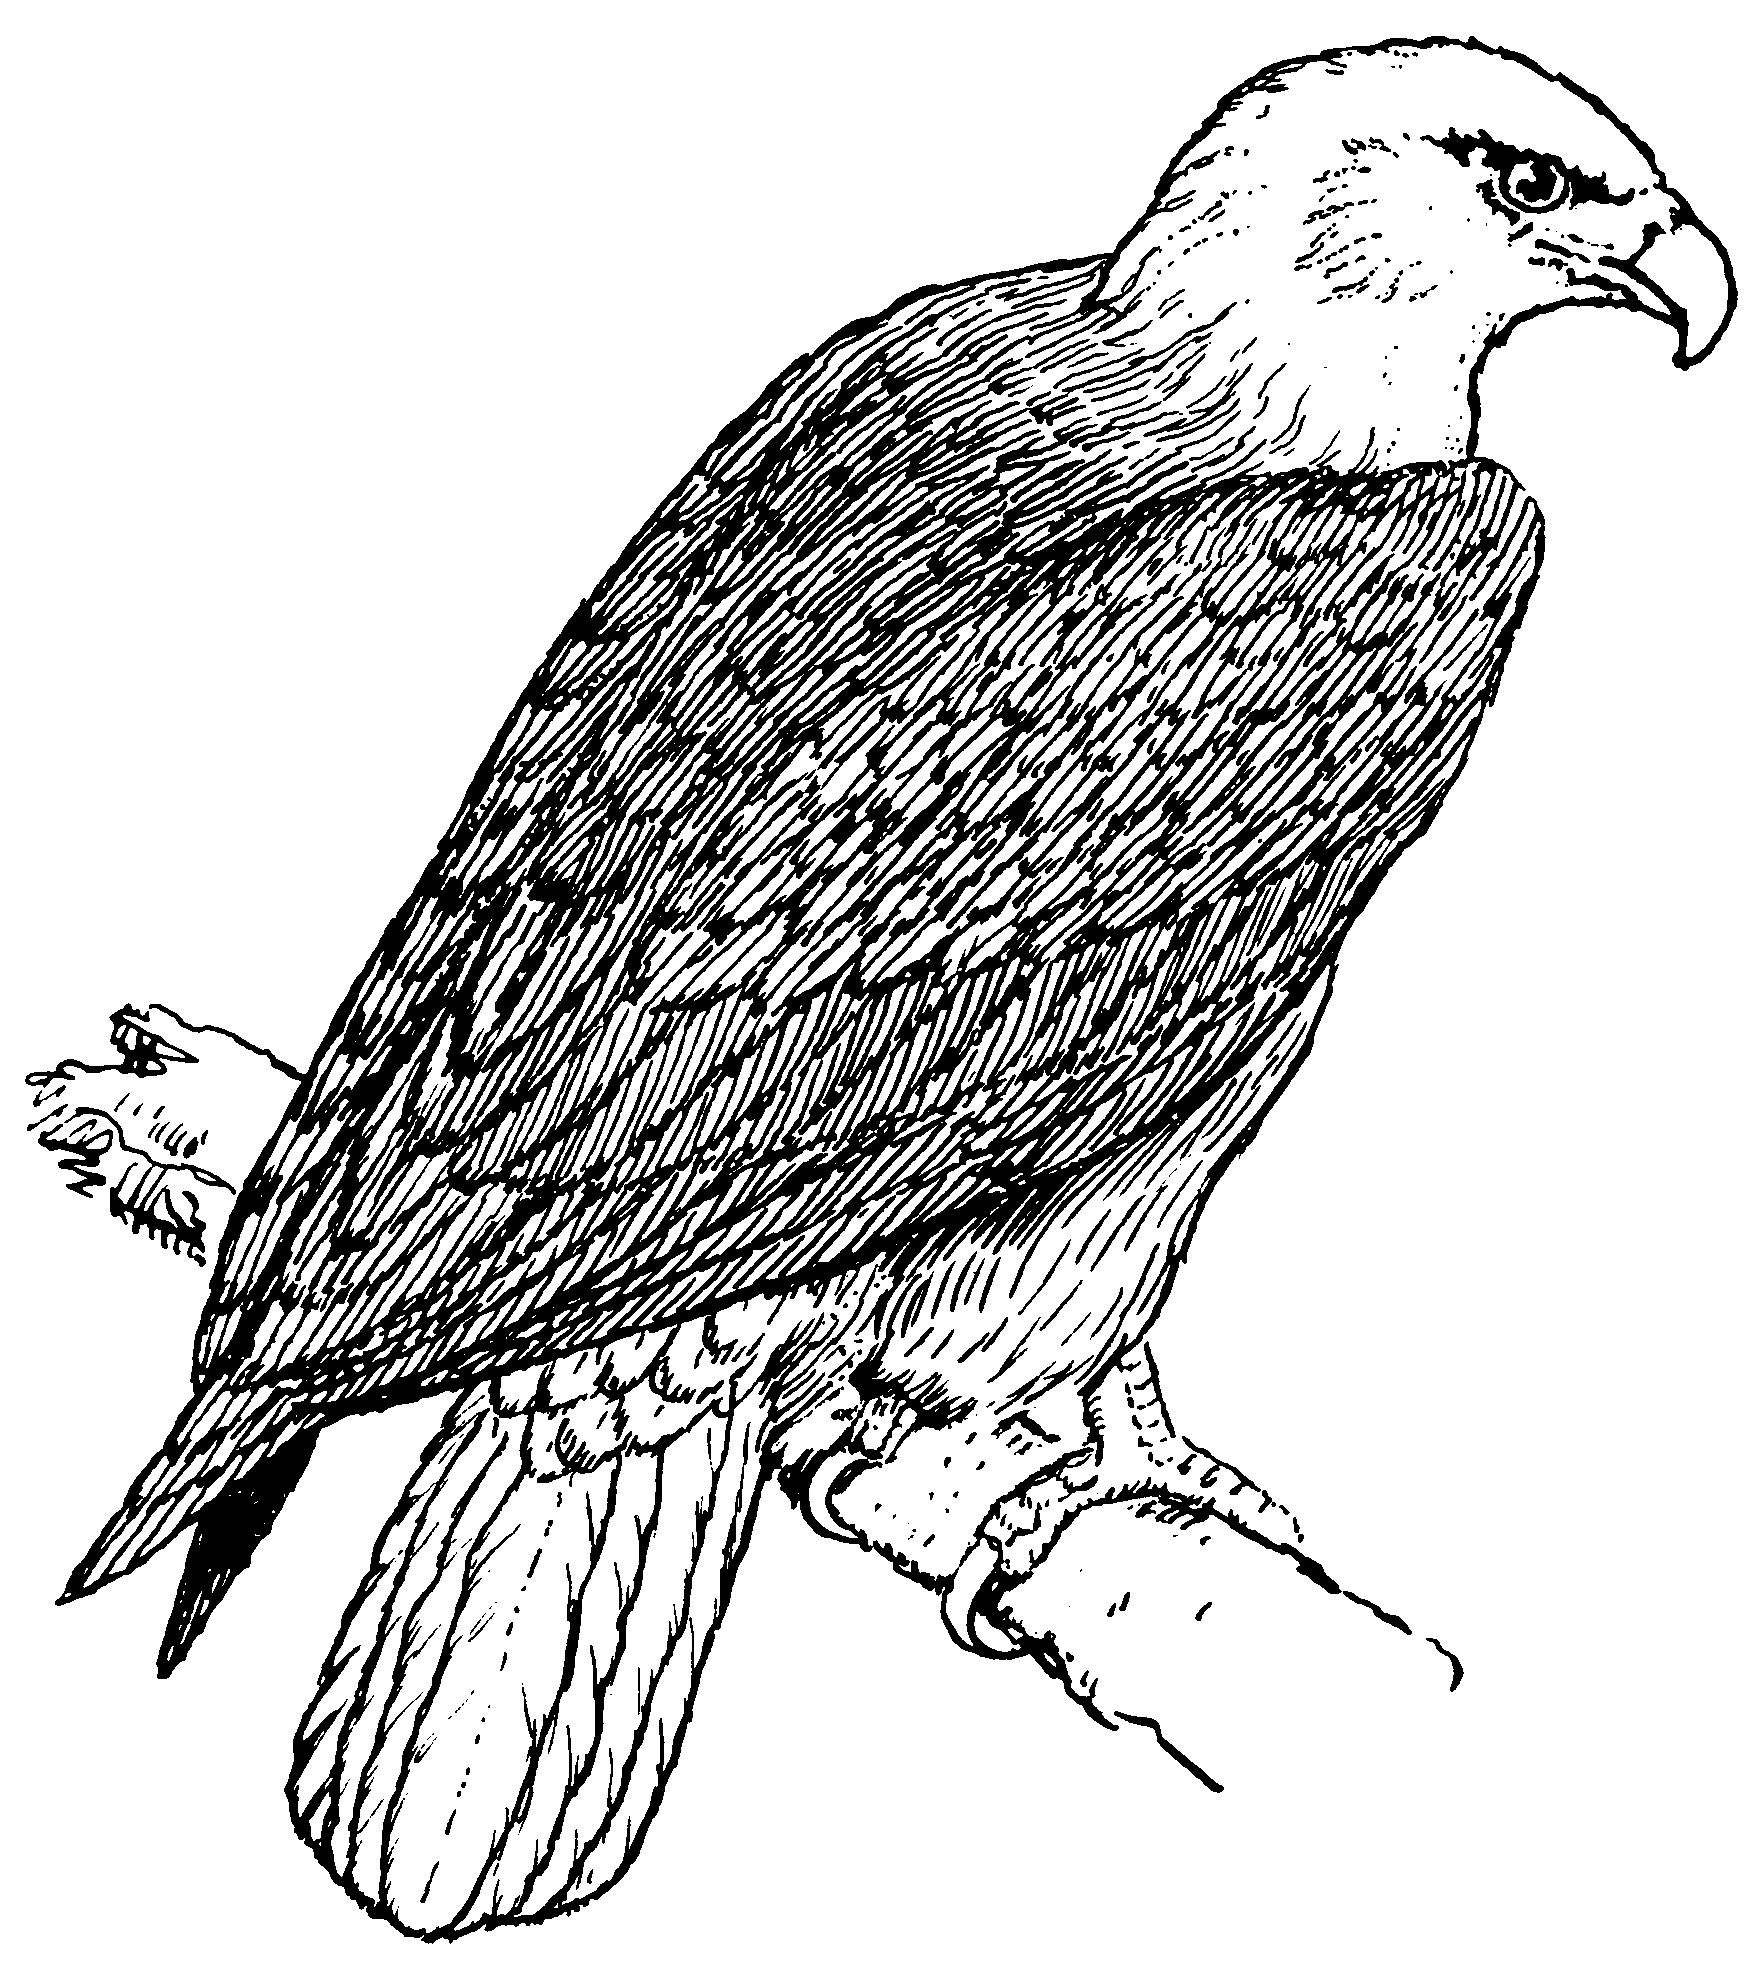 printable bald eagle coloring pages | coloring me - American Bald Eagle Coloring Page